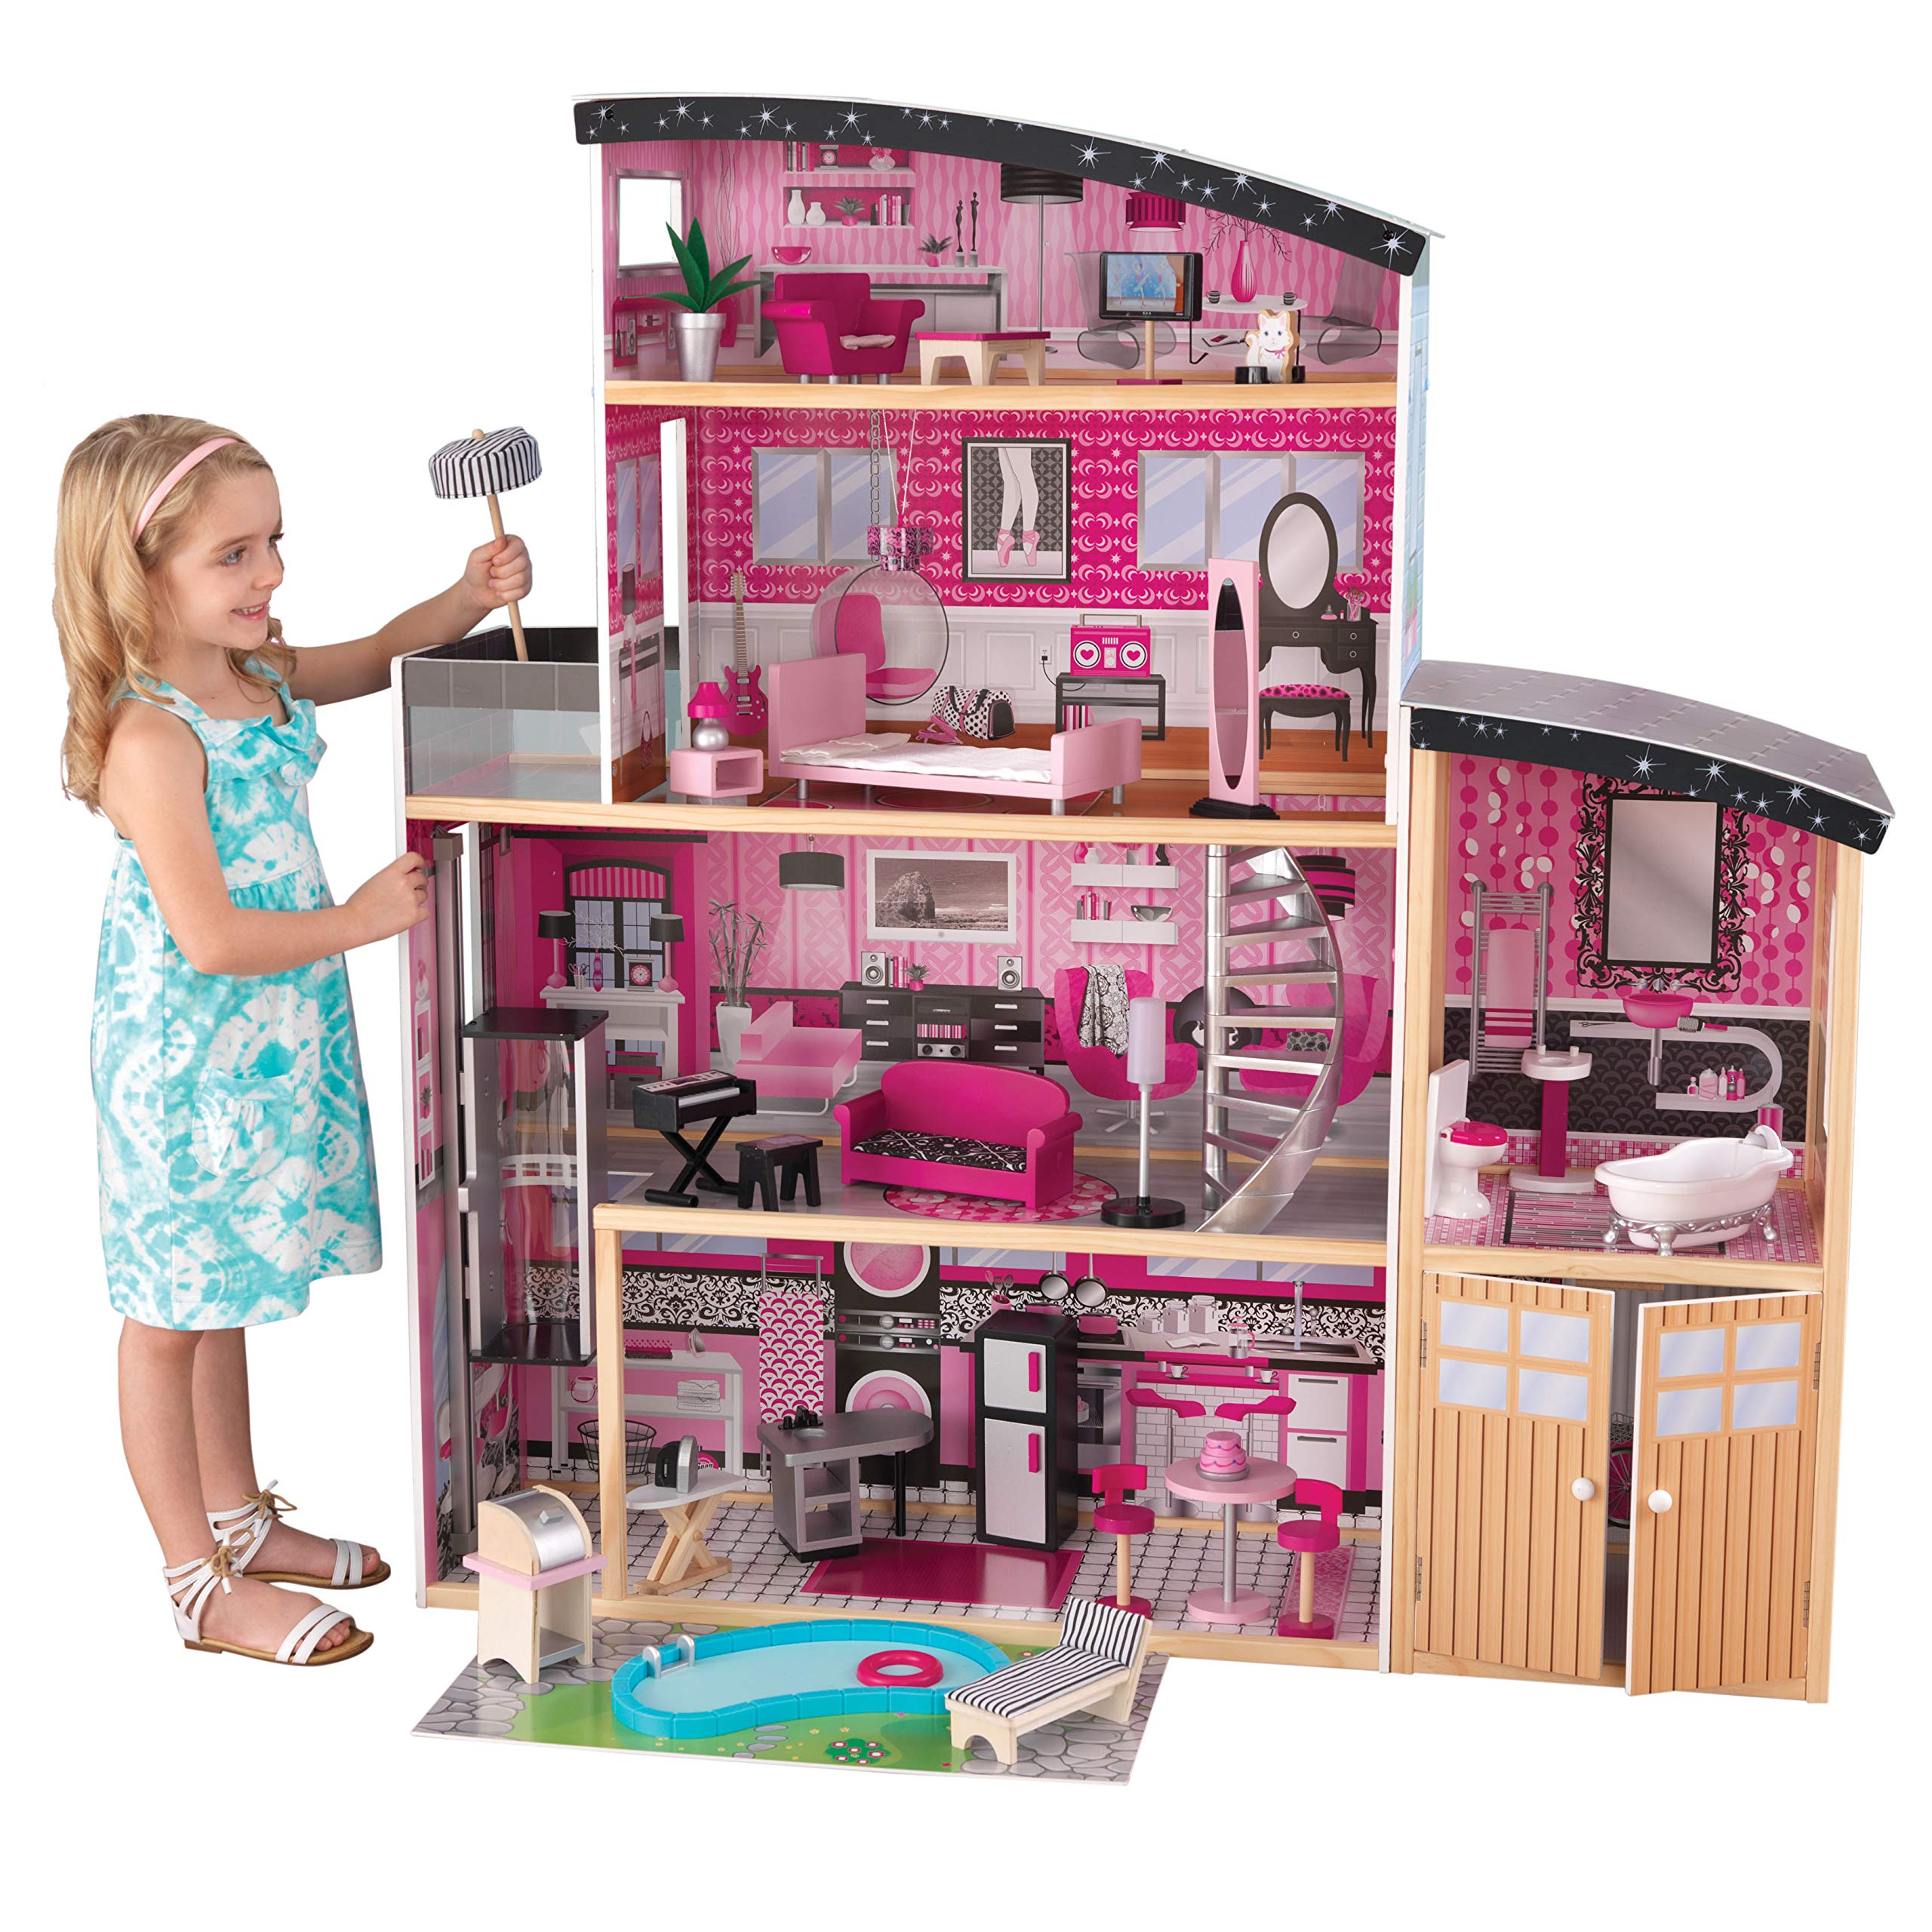 KidKraft Sparkle Mansion Wooden Dollhouse with Lights & Sounds, Swimming Pool, Balcony, Elevator and 30 Accessories, Pink ,Gift for Ages 3+